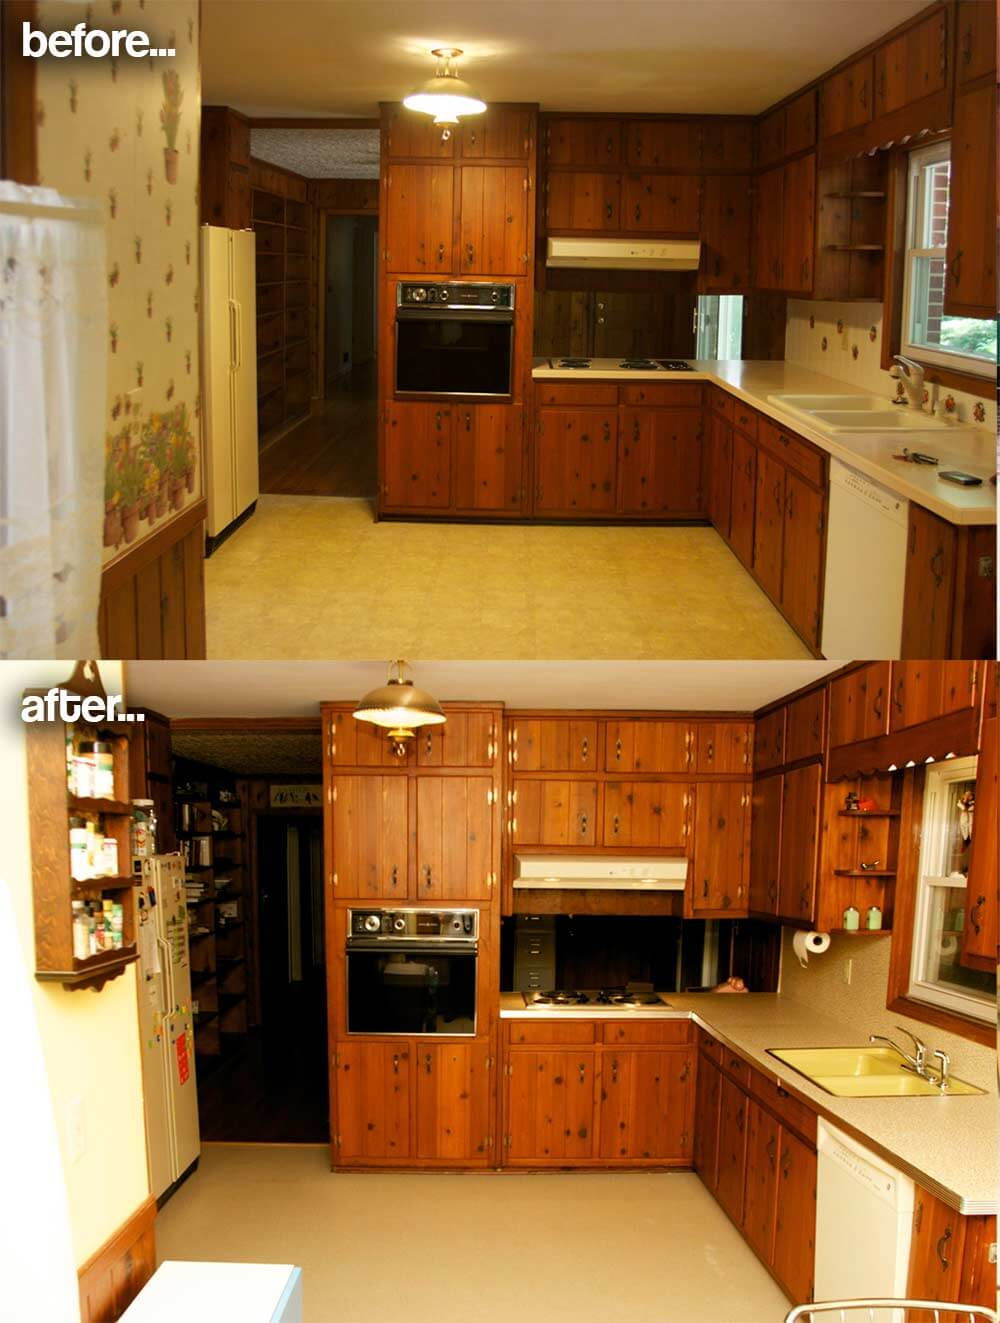 Amber S 1961 Knotty Pine Kitchen Before And After Retro Renovation